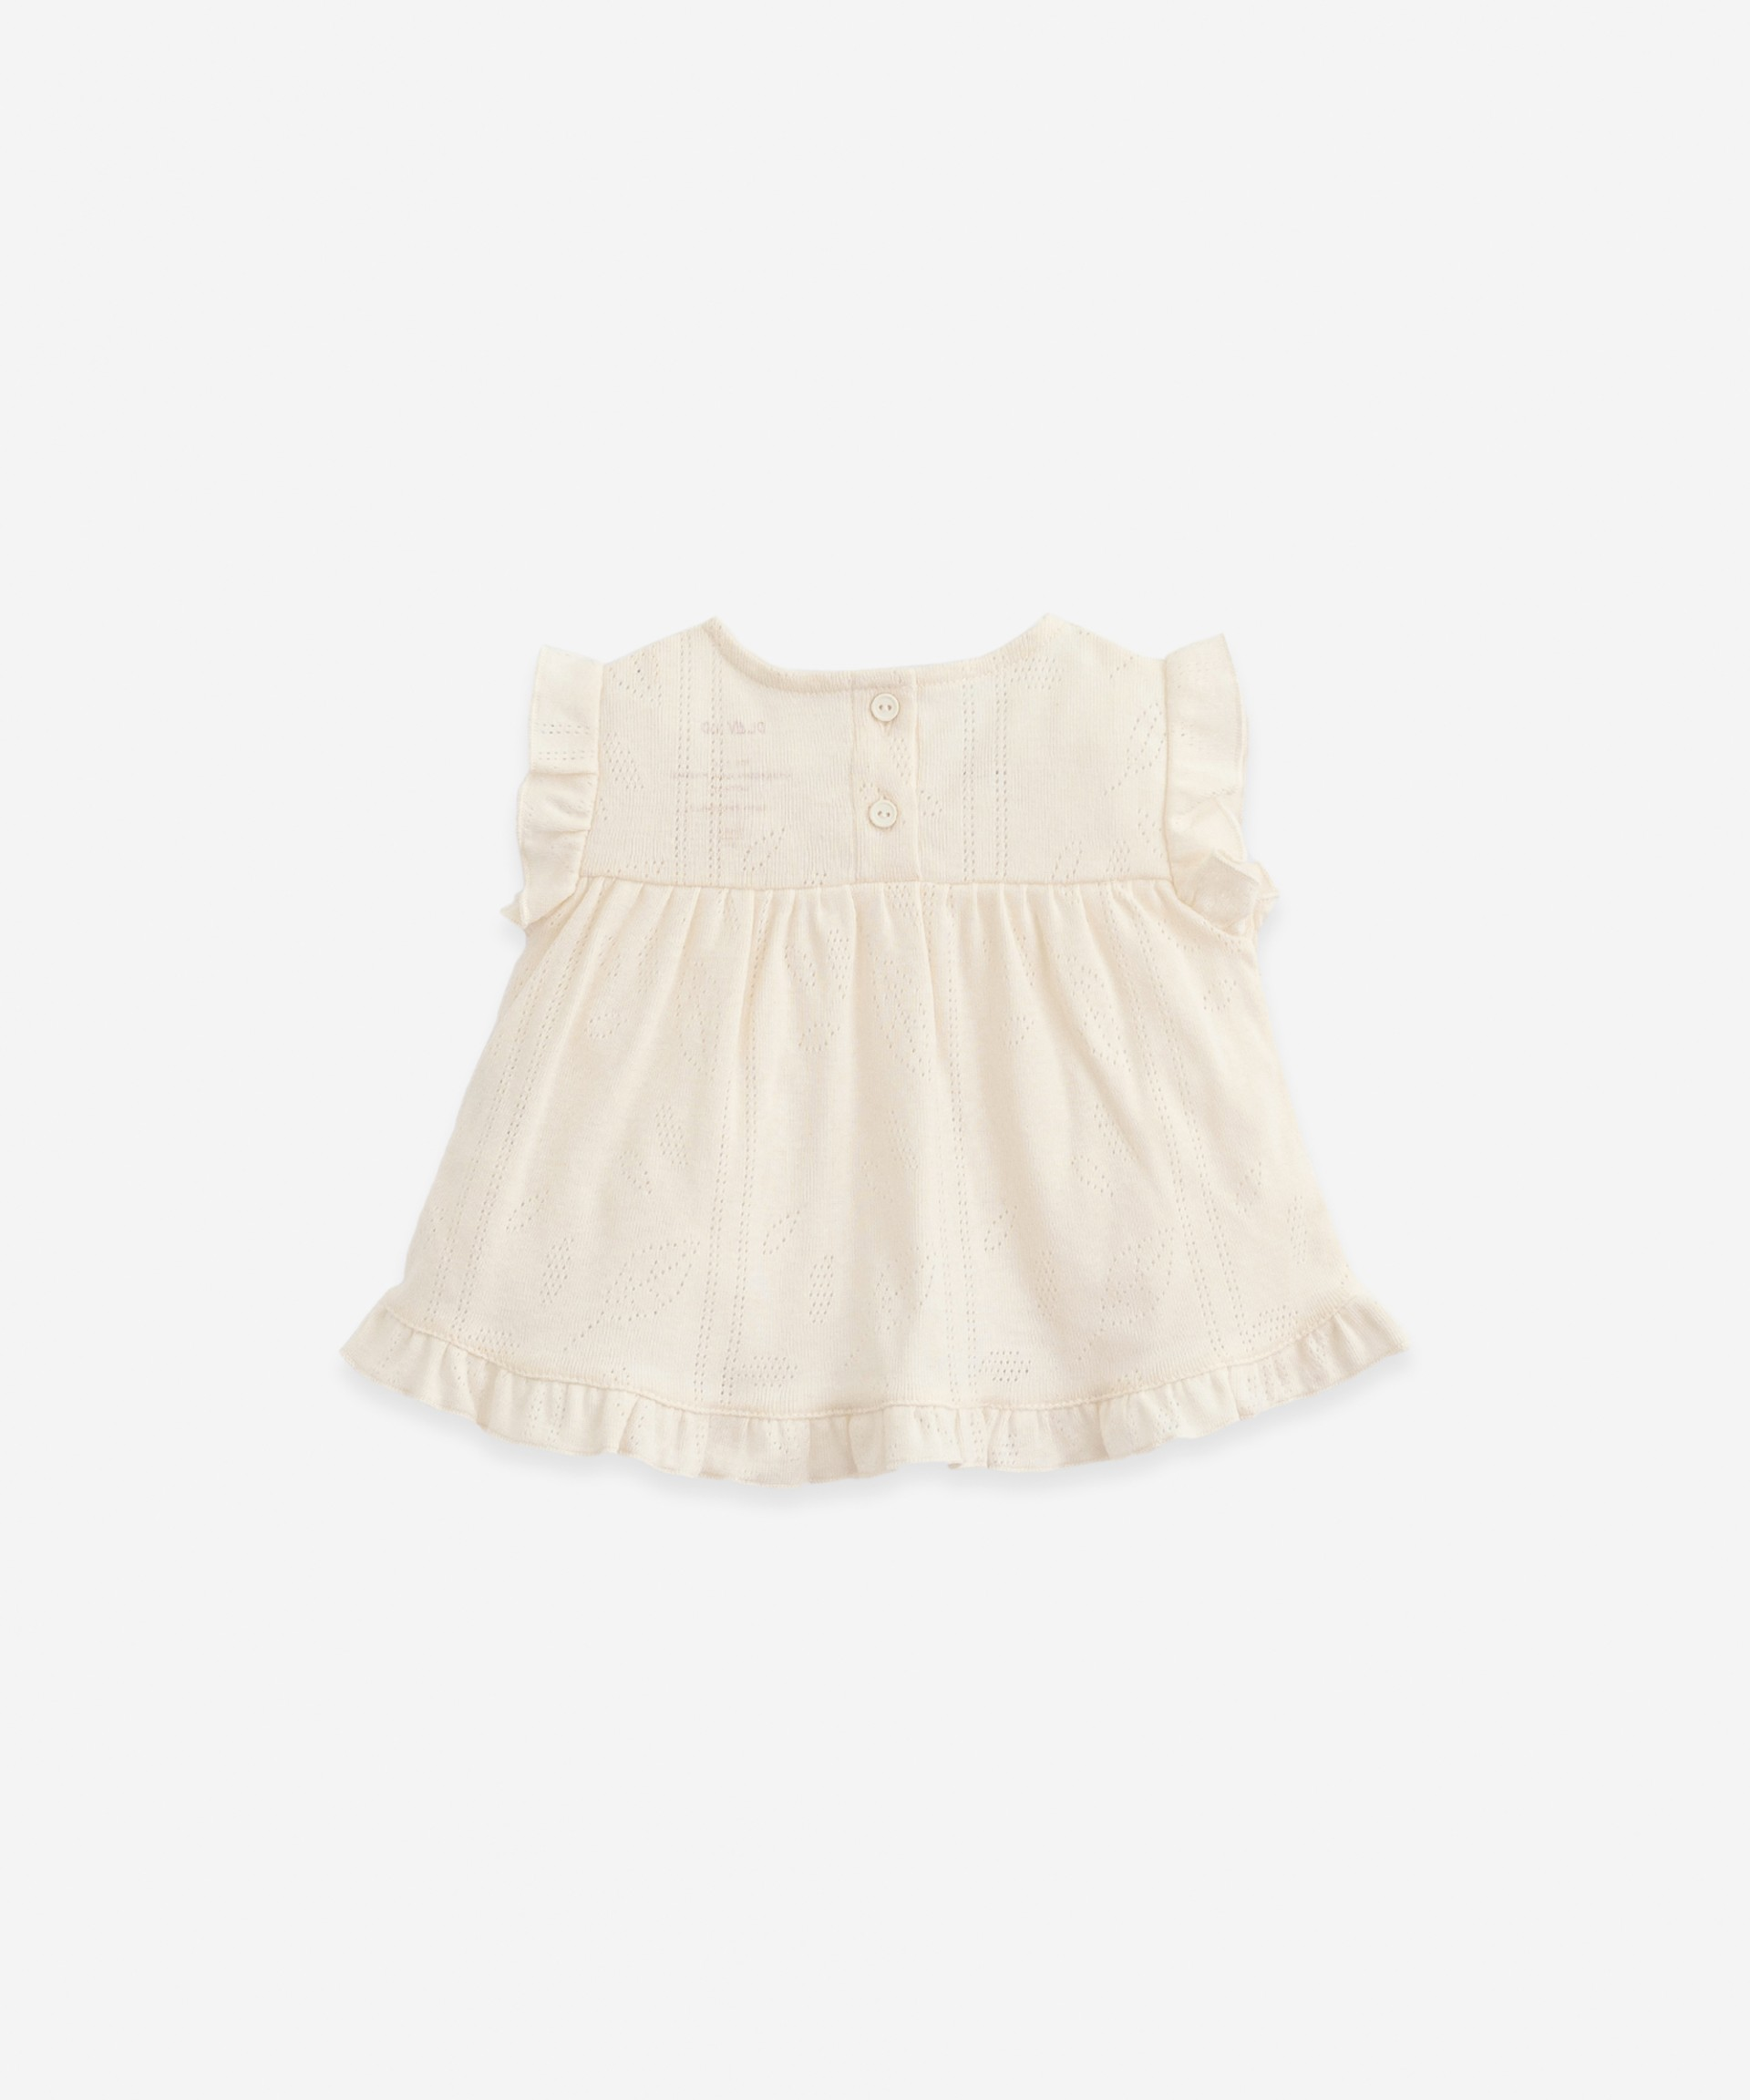 T-shirt with frill on the back | Botany